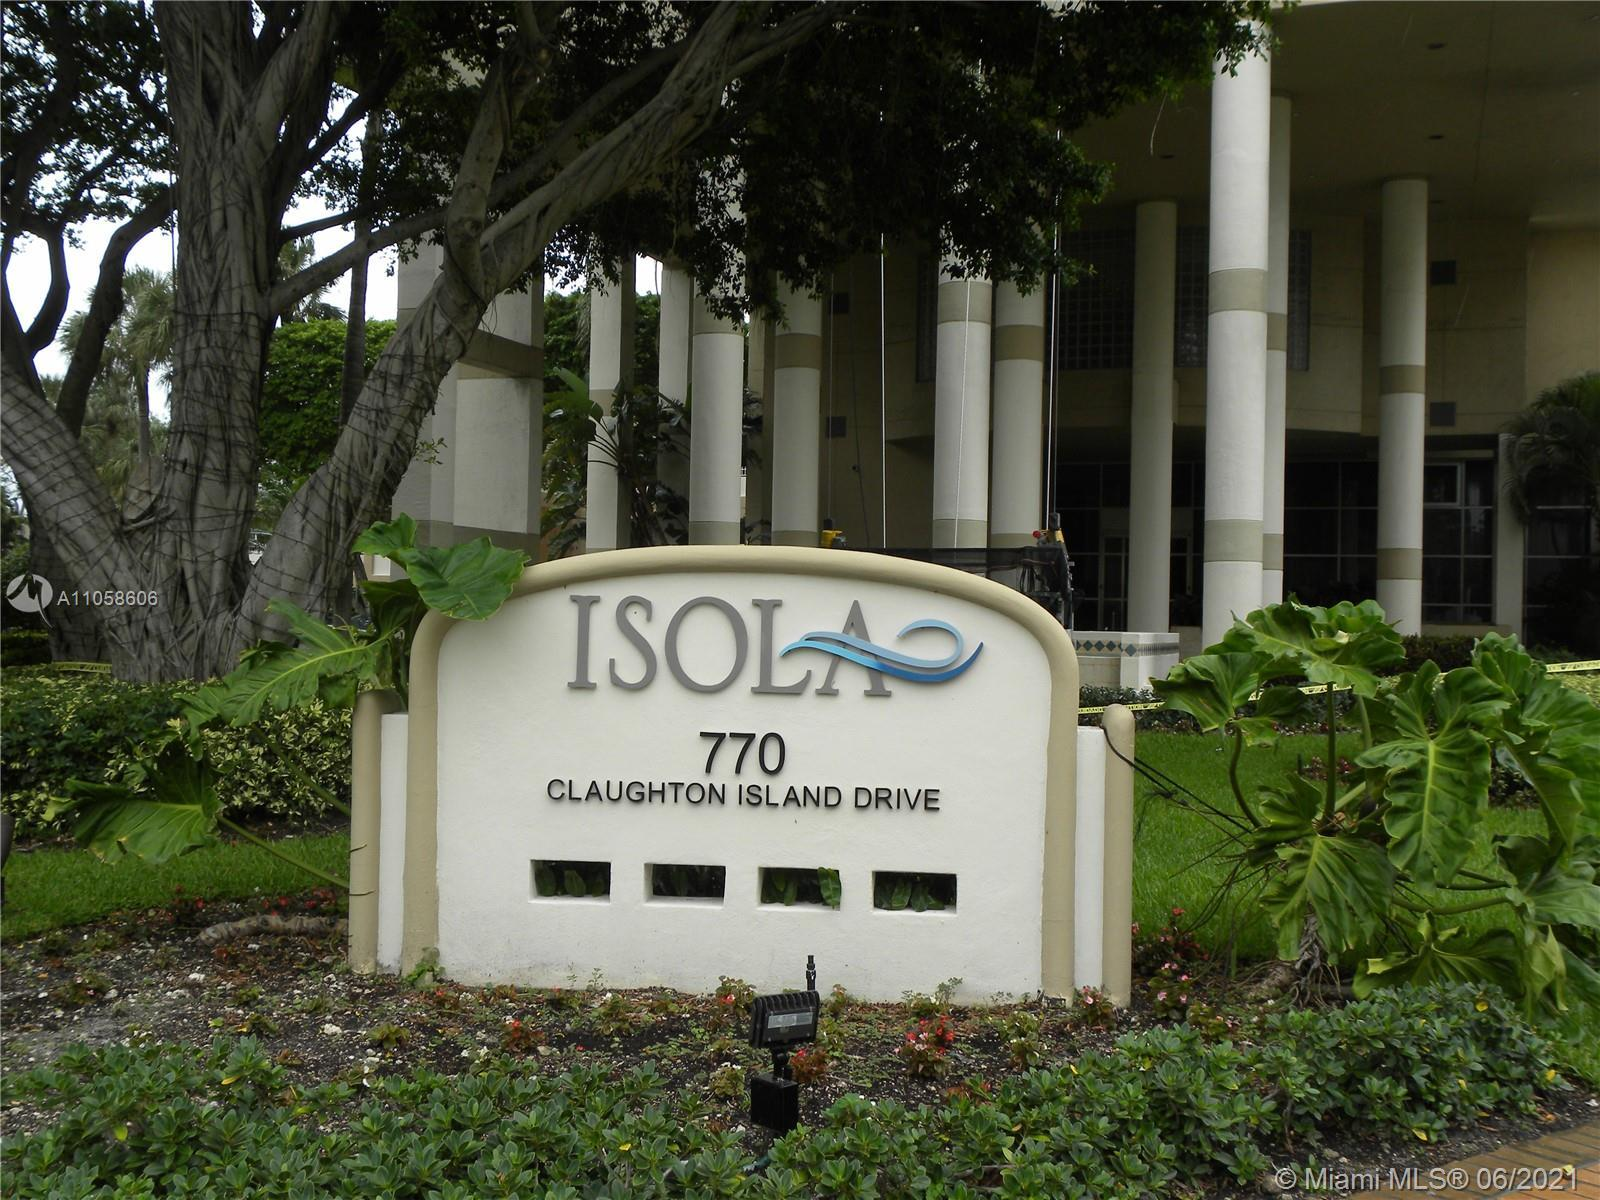 Isola - Condos for sale